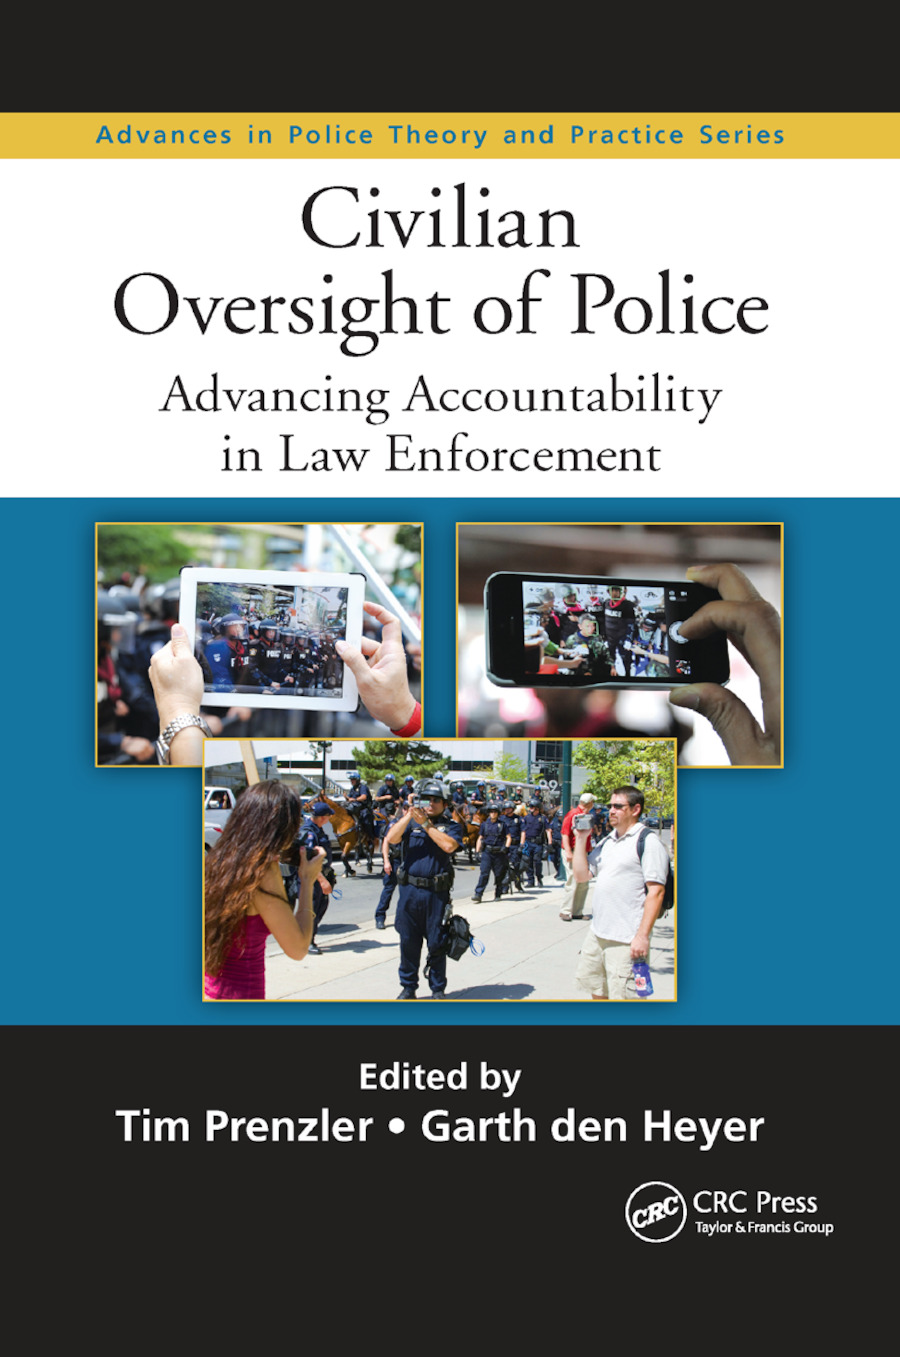 Civilian Oversight of Police: Advancing Accountability in Law Enforcement book cover